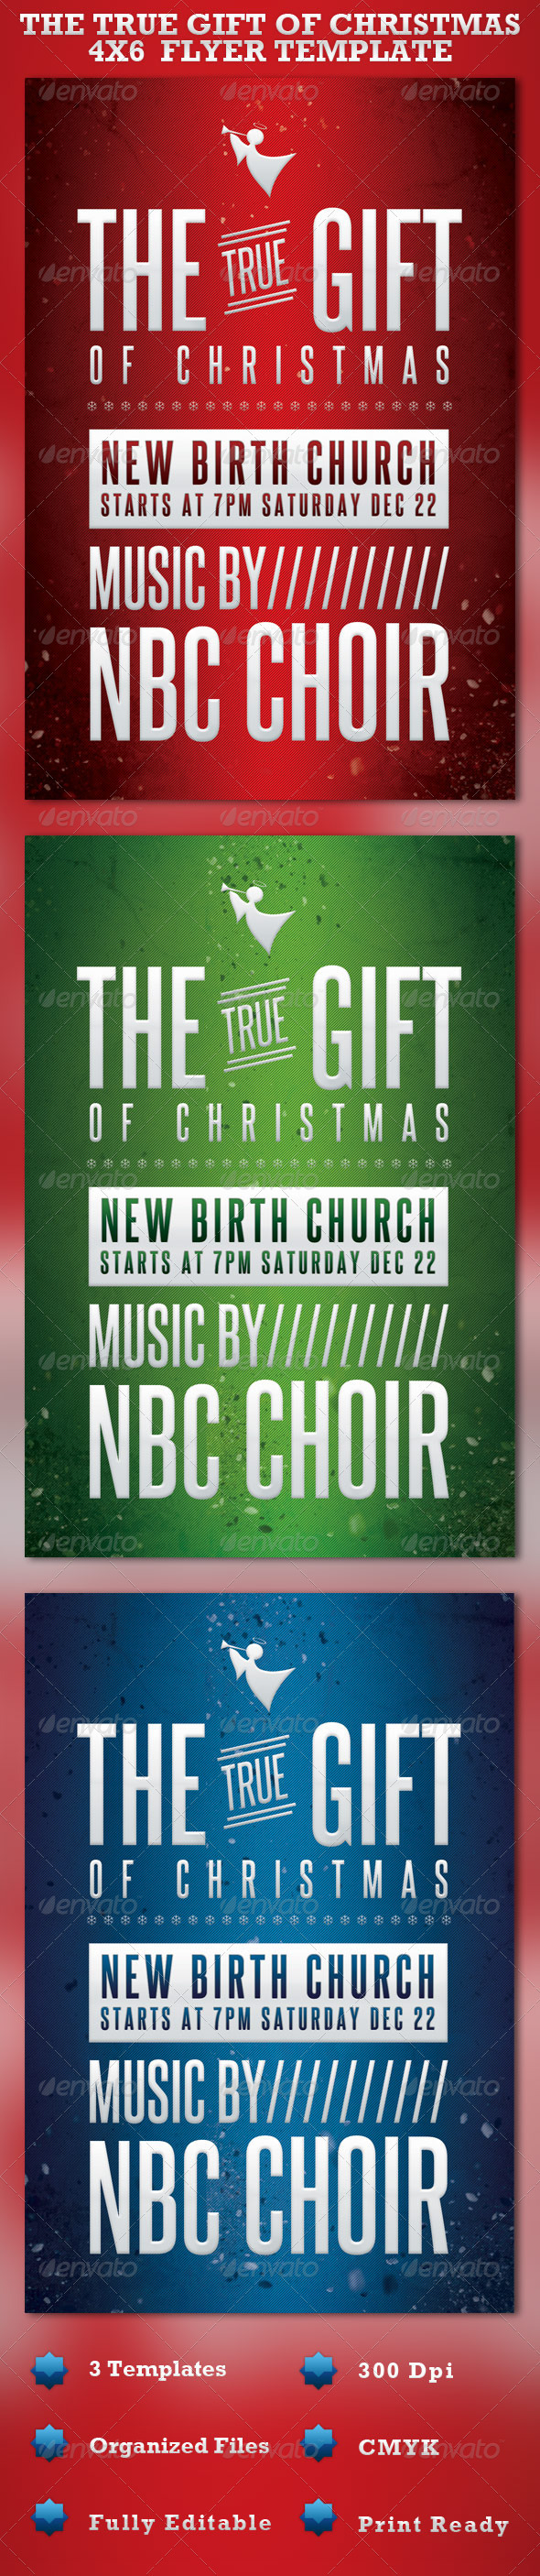 The Gift of Christmas Church Flyer Template - Church Flyers